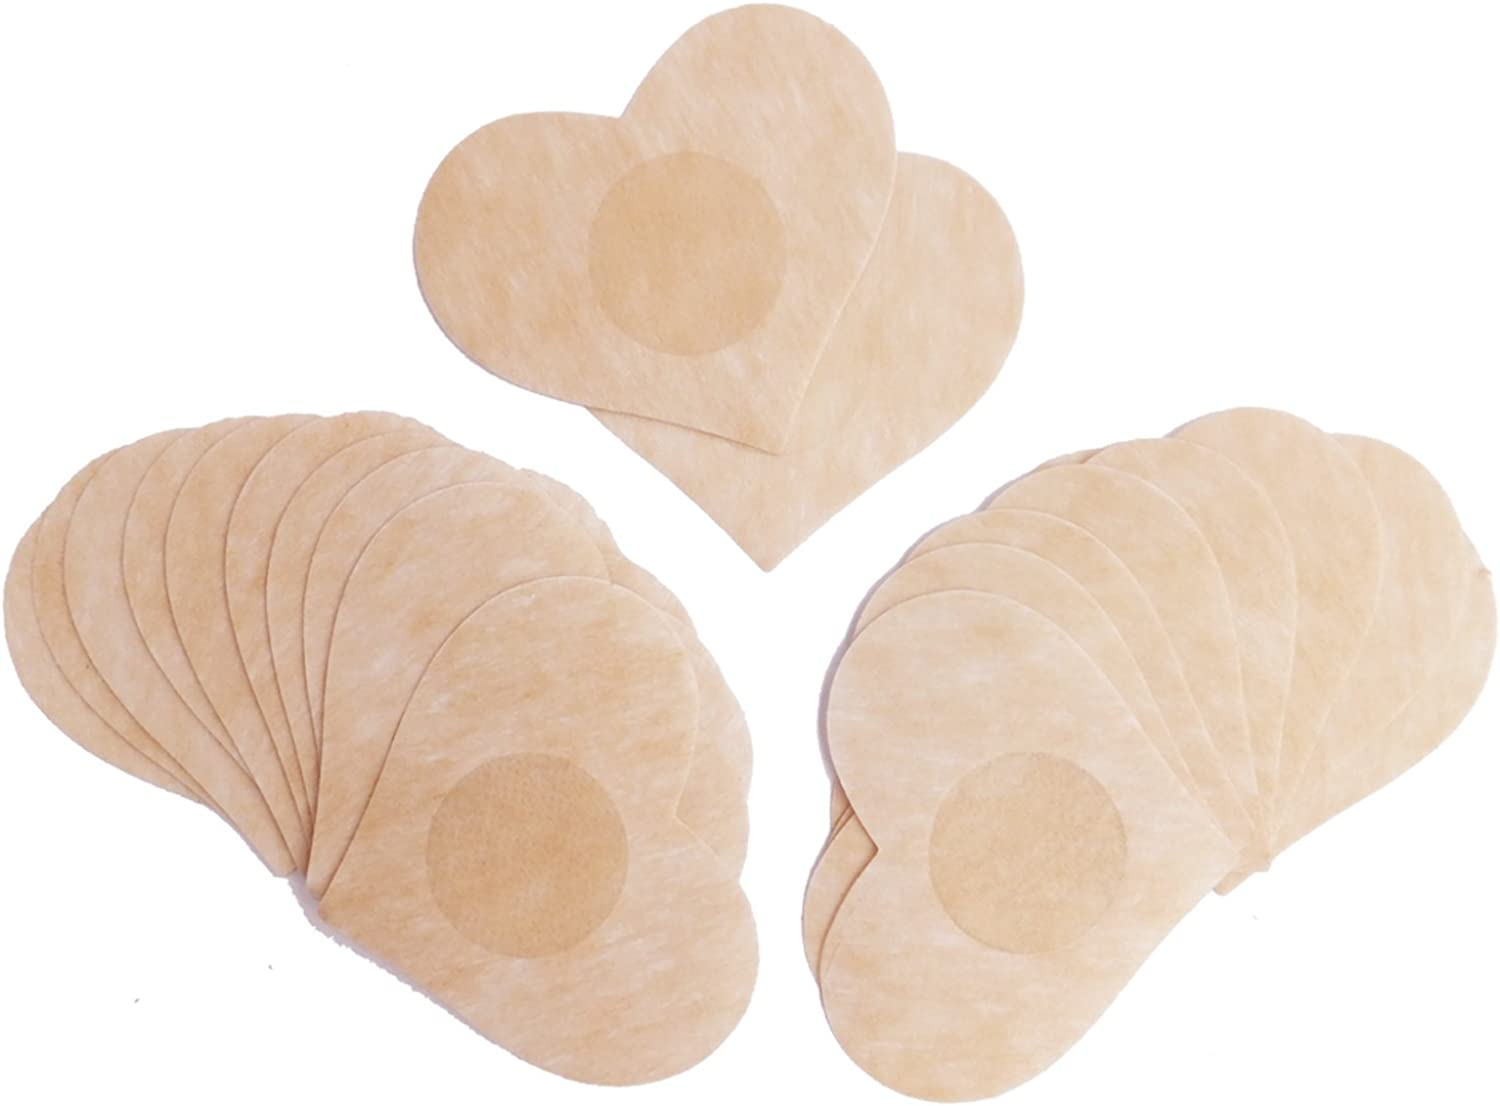 20 Pairs, Heart Shape DoHope Disposable Nipple Covers Non Woven Adhesive No Show Breast Petal Pasties